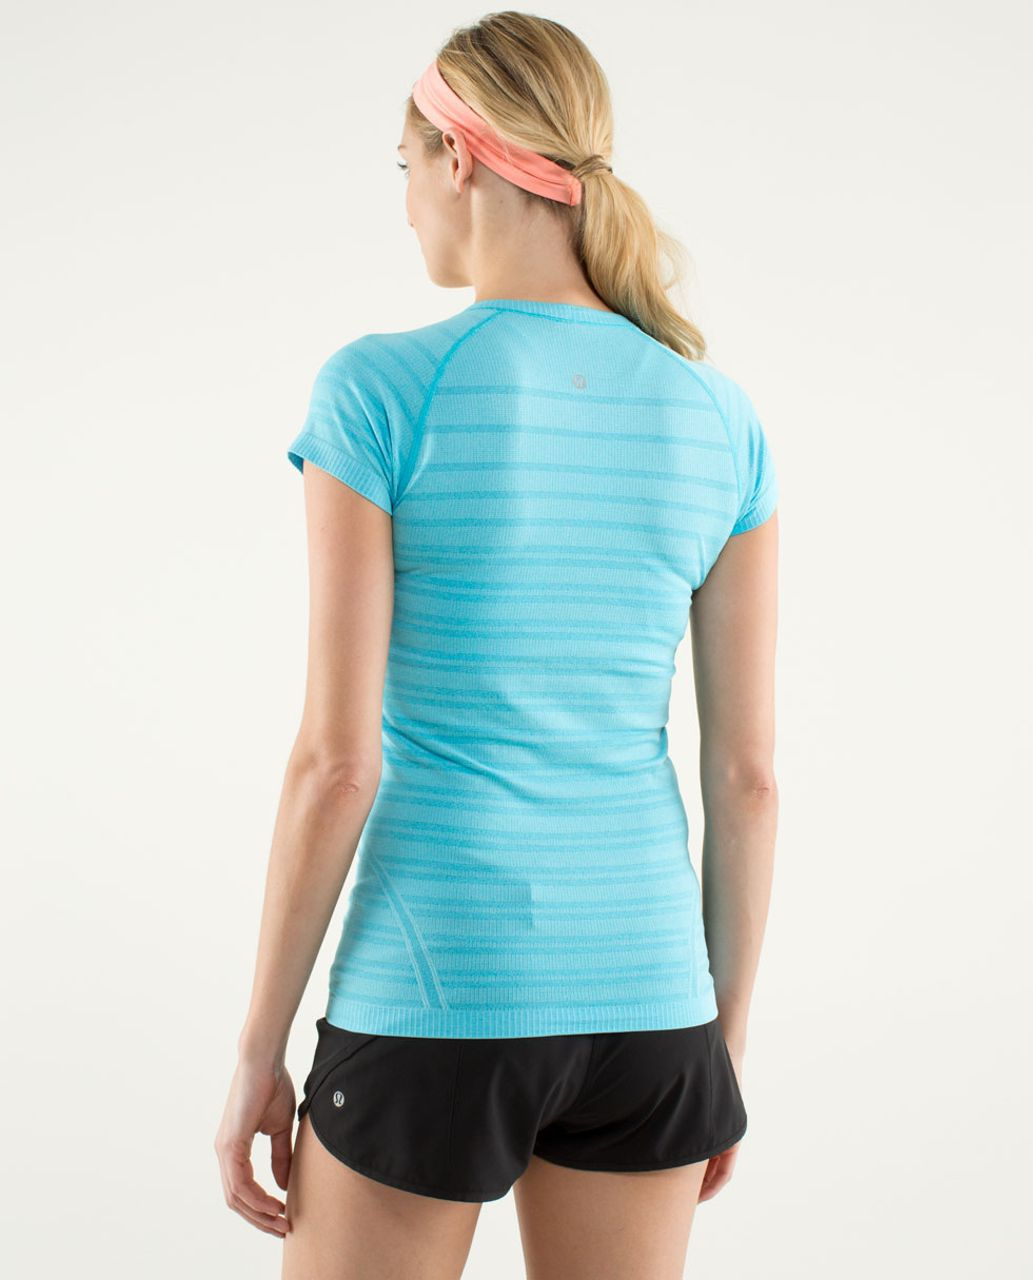 Lululemon Run:  Swiftly Tech Short Sleeve - Spry Blue